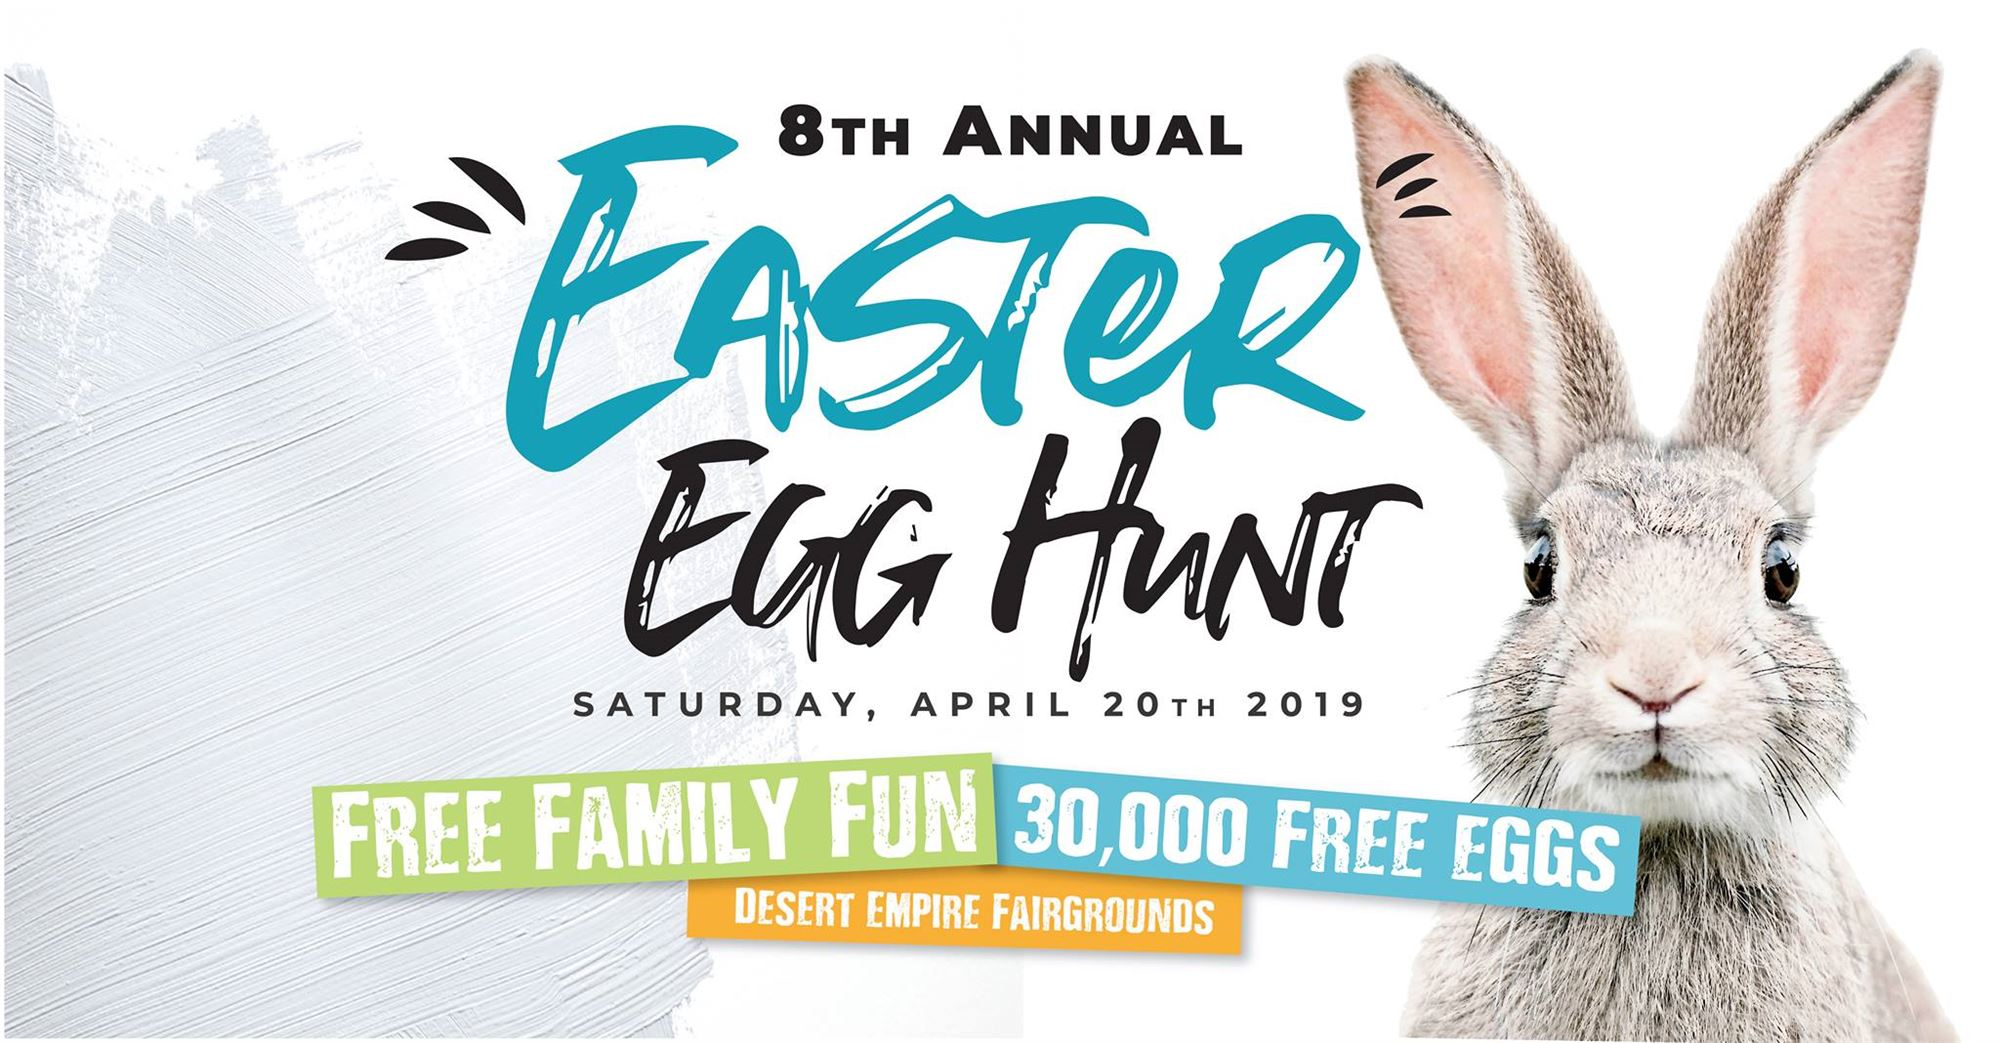 April 20th: Annual Community Easter Egg Hunt